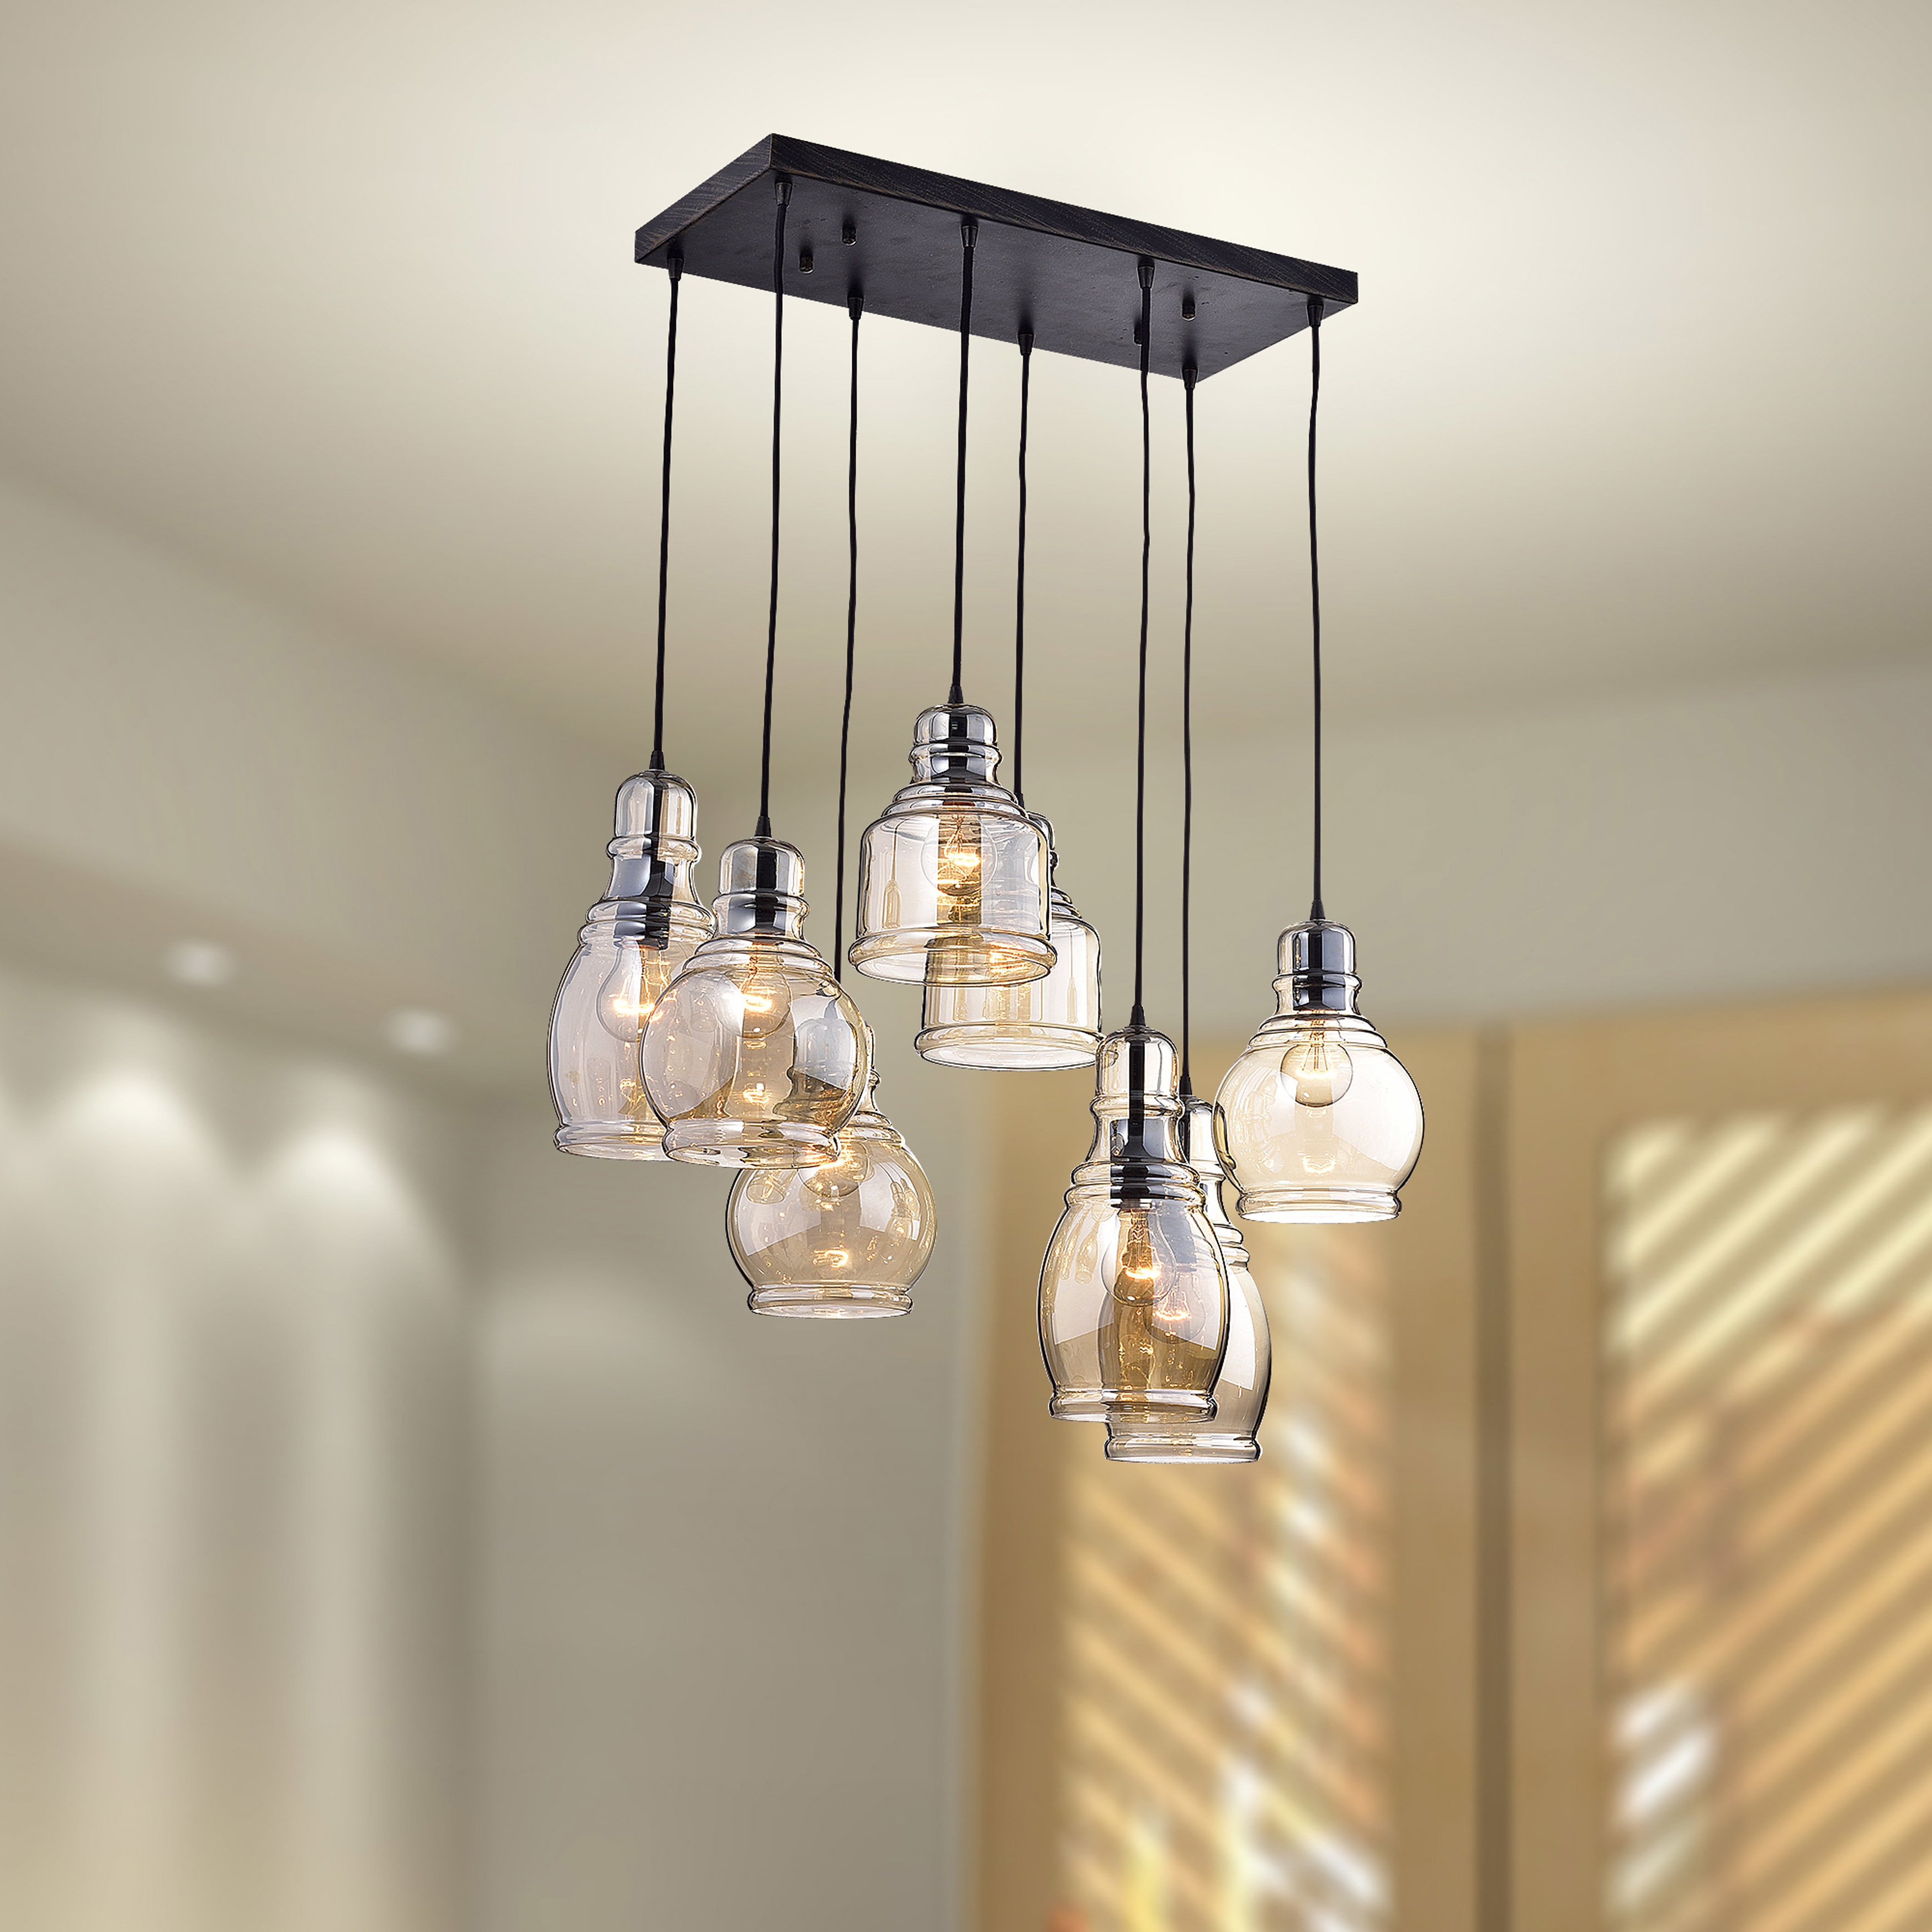 Favorite Pruett Cognac Glass 8 Light Cluster Pendants In Pruett Cognac Glass 8 Light Cluster Pendant (View 5 of 20)